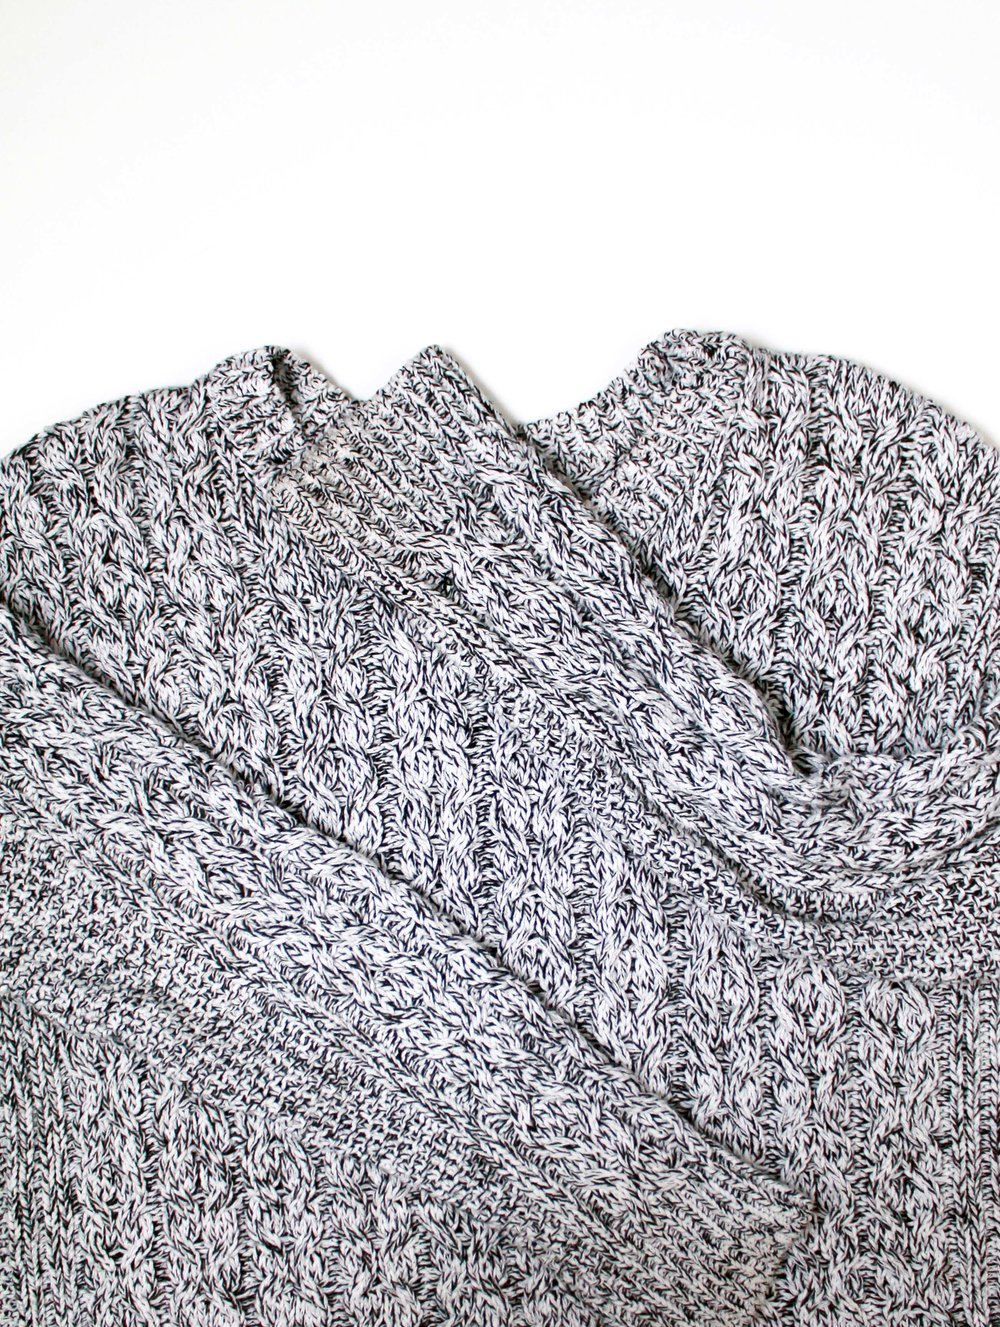 70169d0ff These Sweaters Are Making Me Itchy! — Everyday Allergen-Free